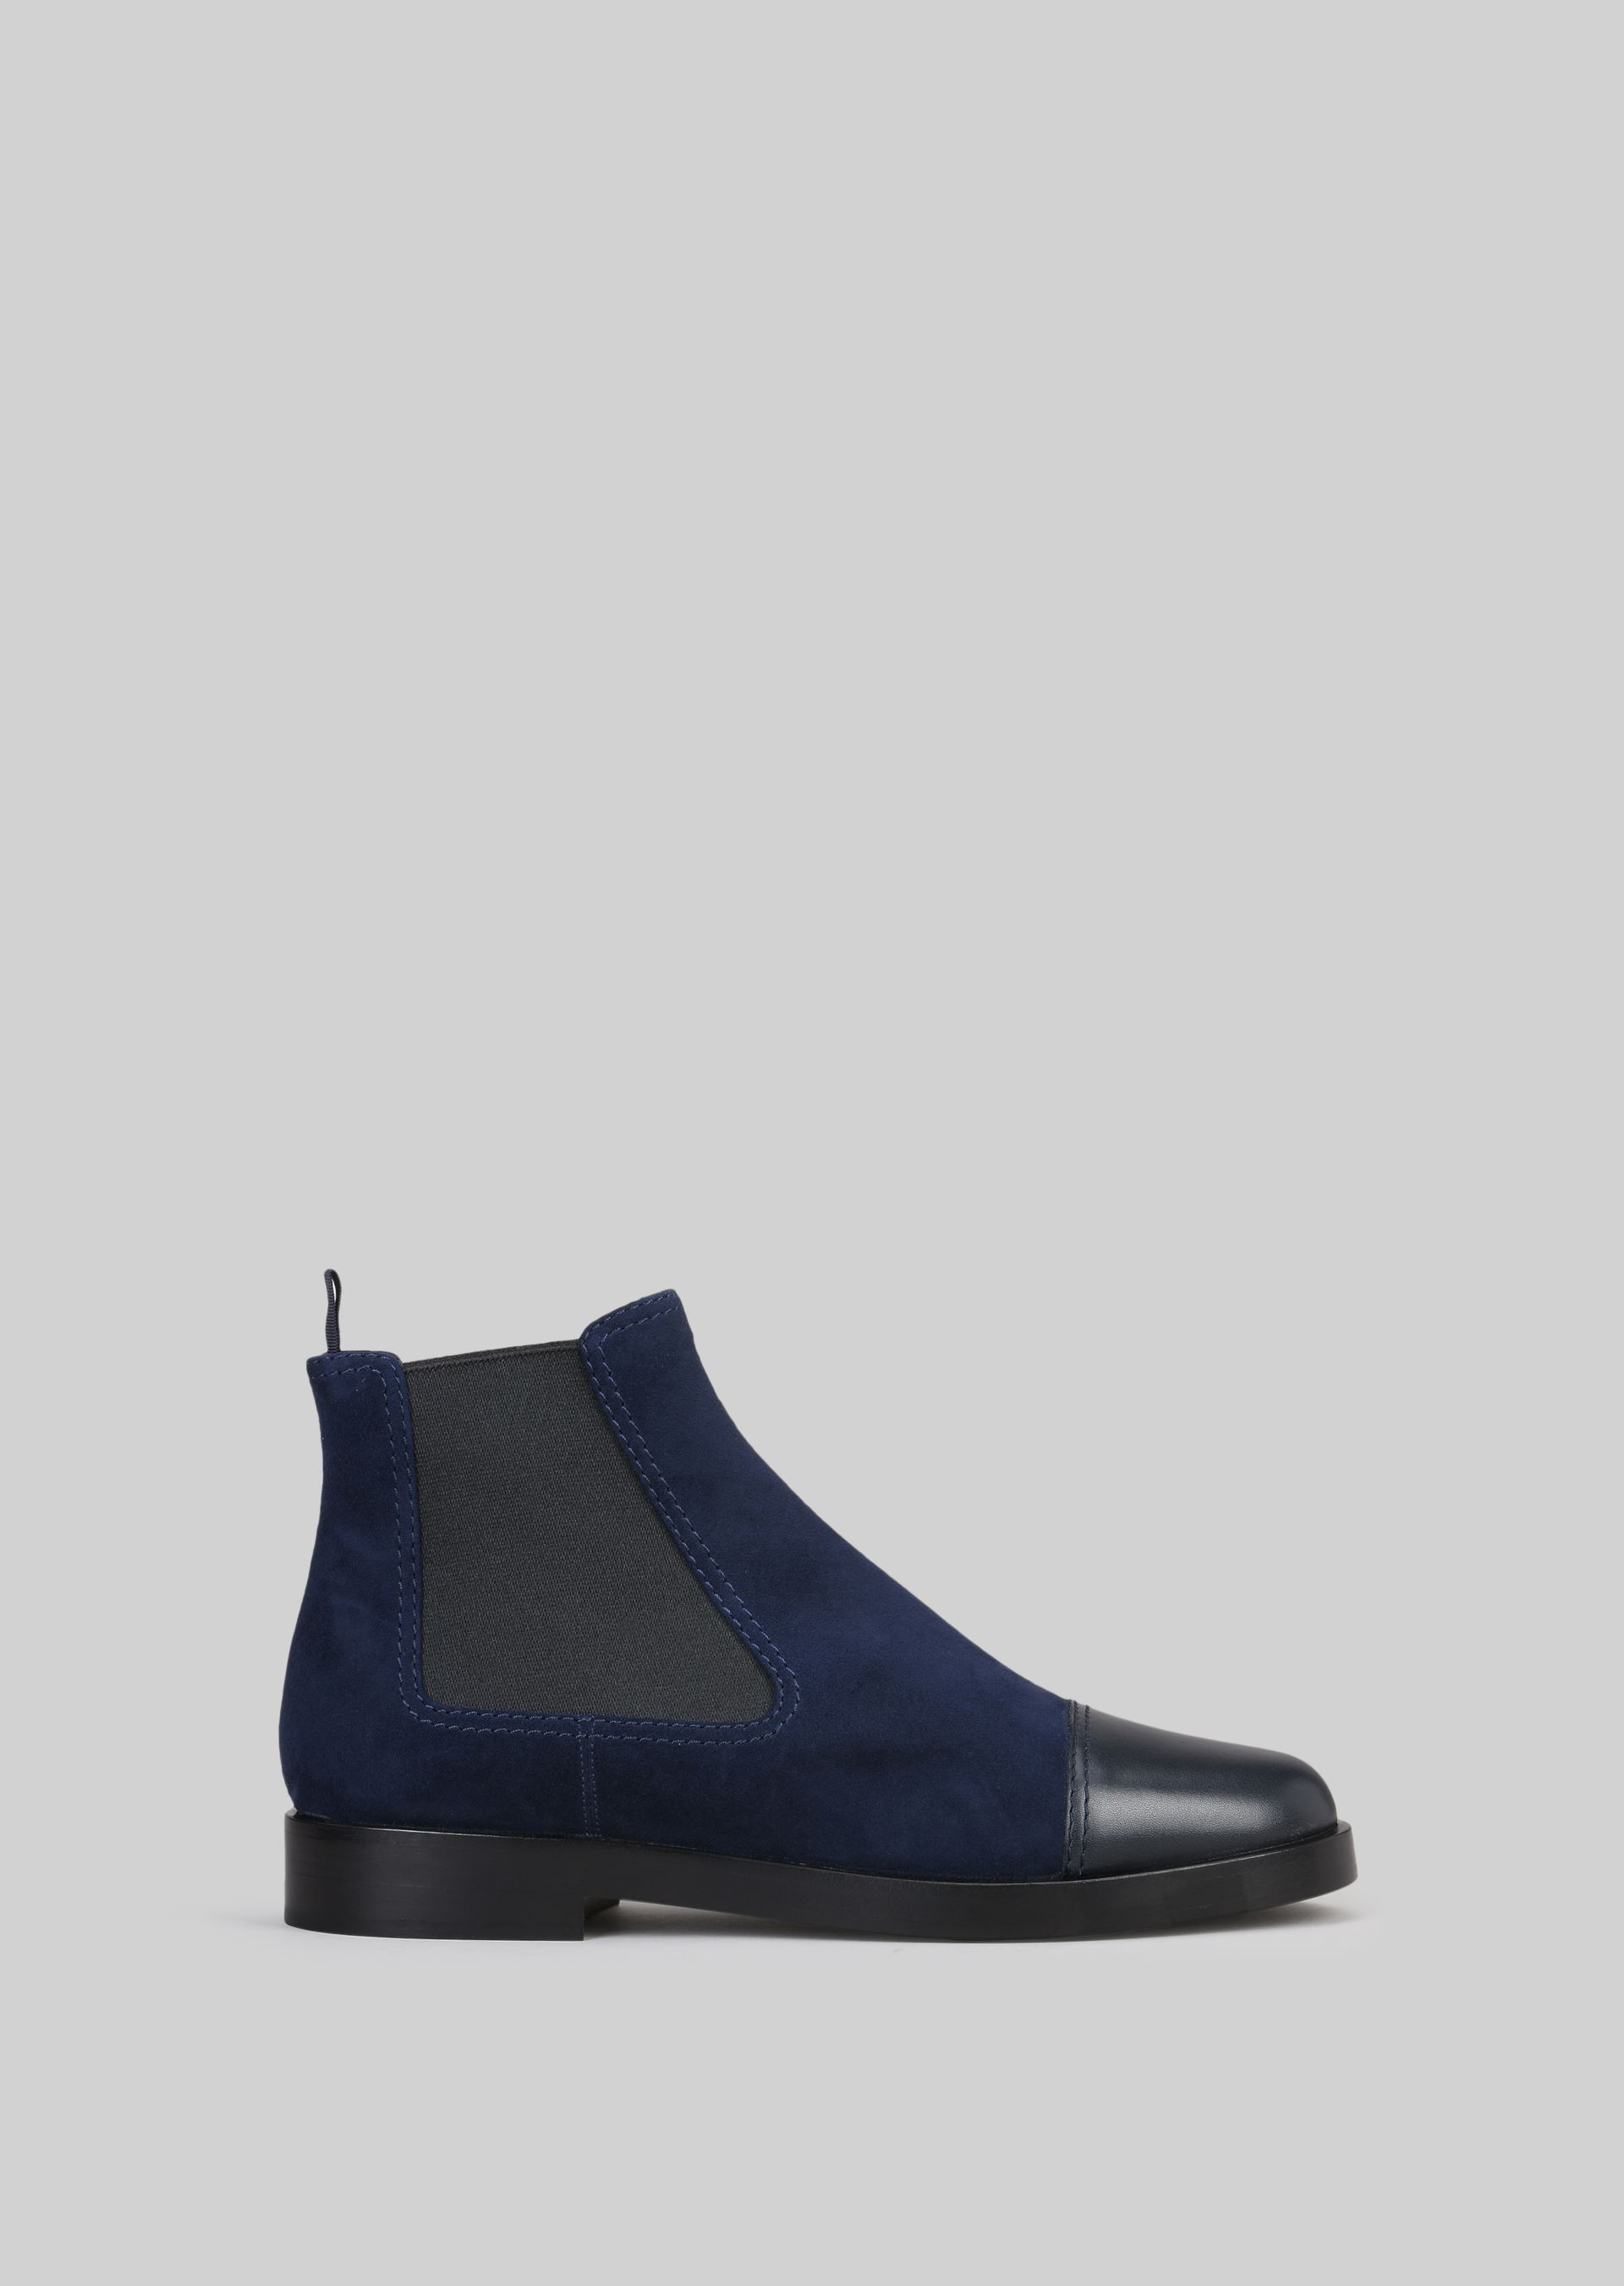 GIORGIO ARMANI SUEDE BEATLE BOOTS Ankle Boots D f